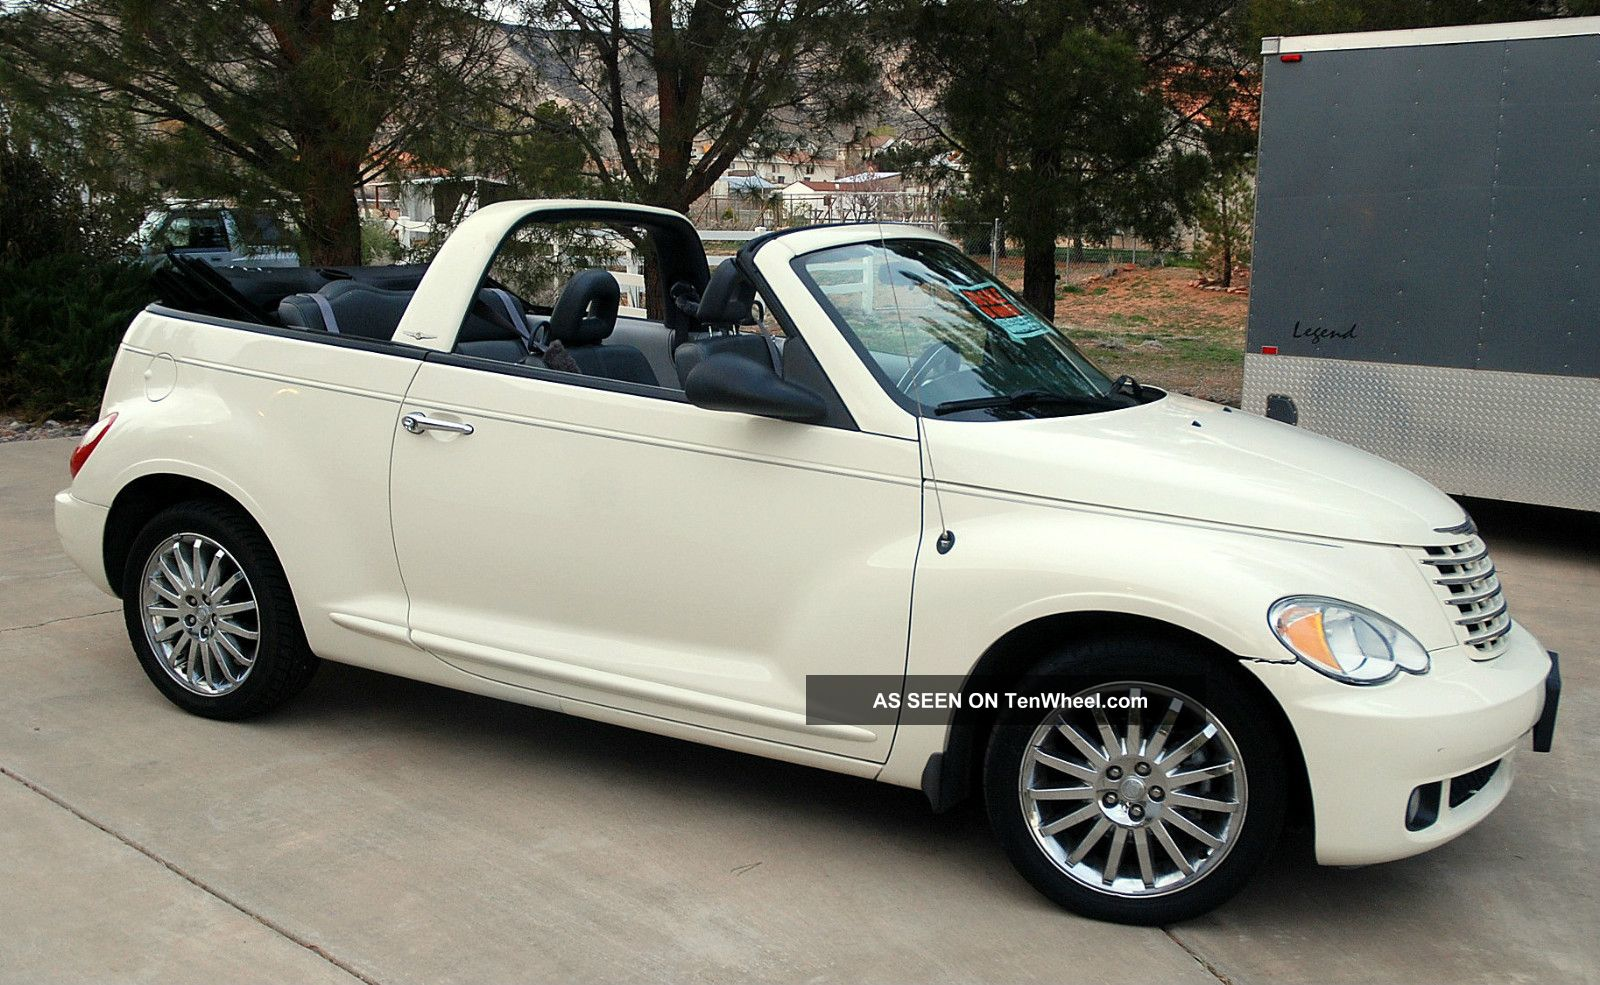 2006 Pt Cruiser Turbo Convertible PT Cruiser photo